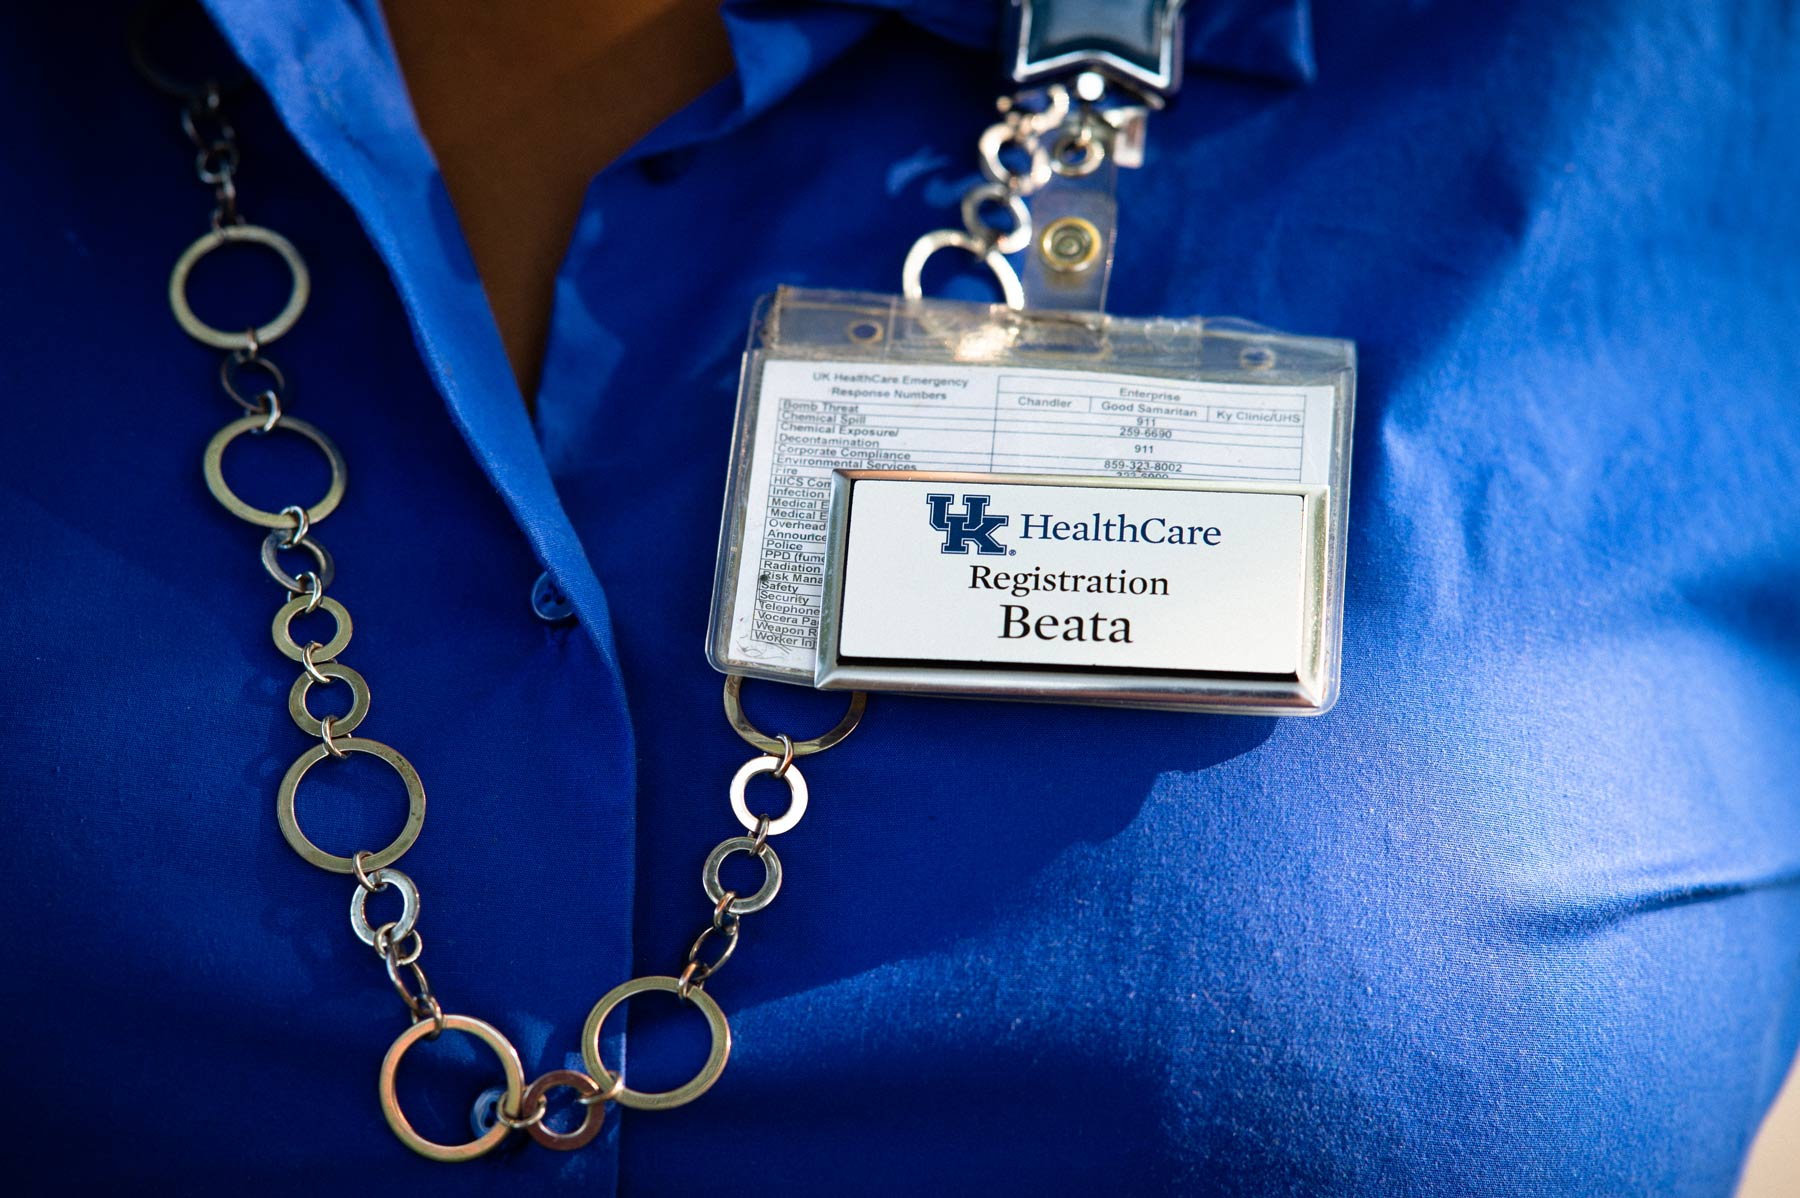 A close up of Beata's UK HealthCare Registration ID Badge.